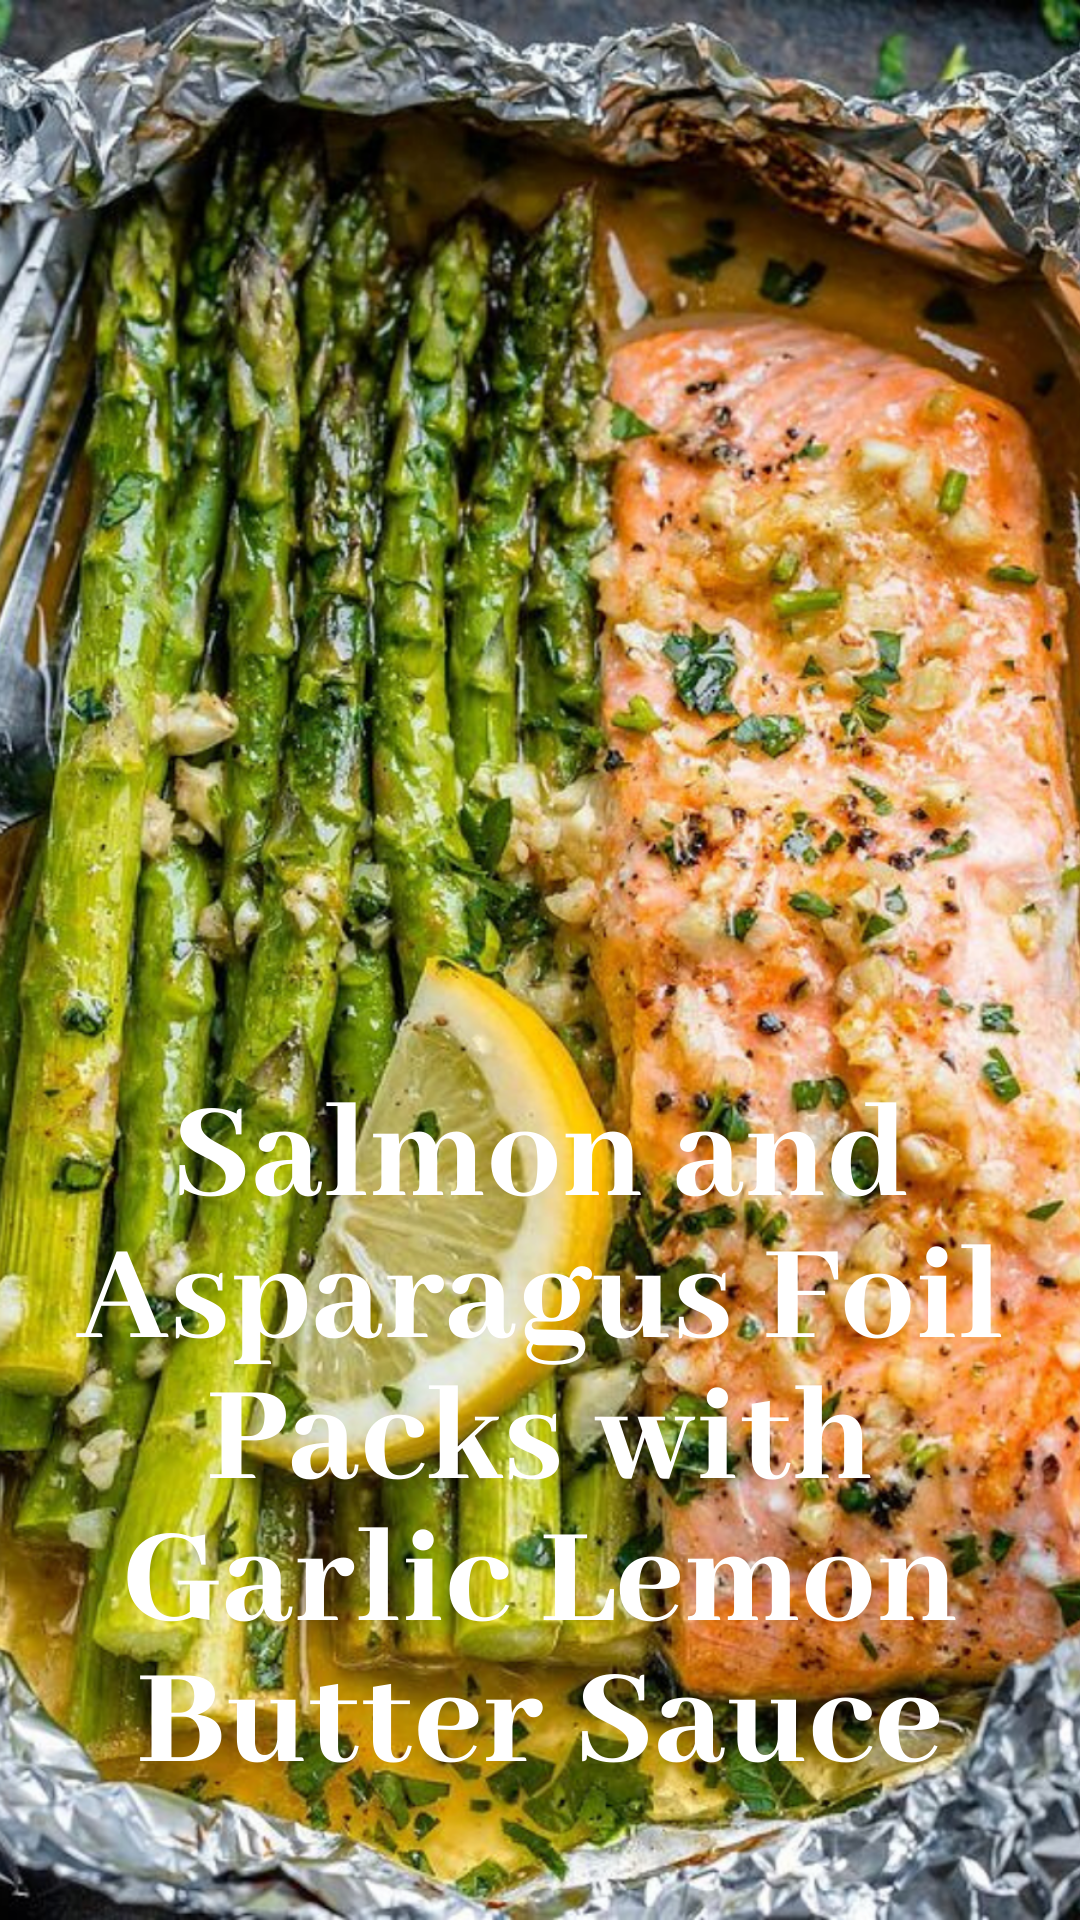 Salmon and Asparagus Foil Packs with Garlic Lemon Butter Sauce